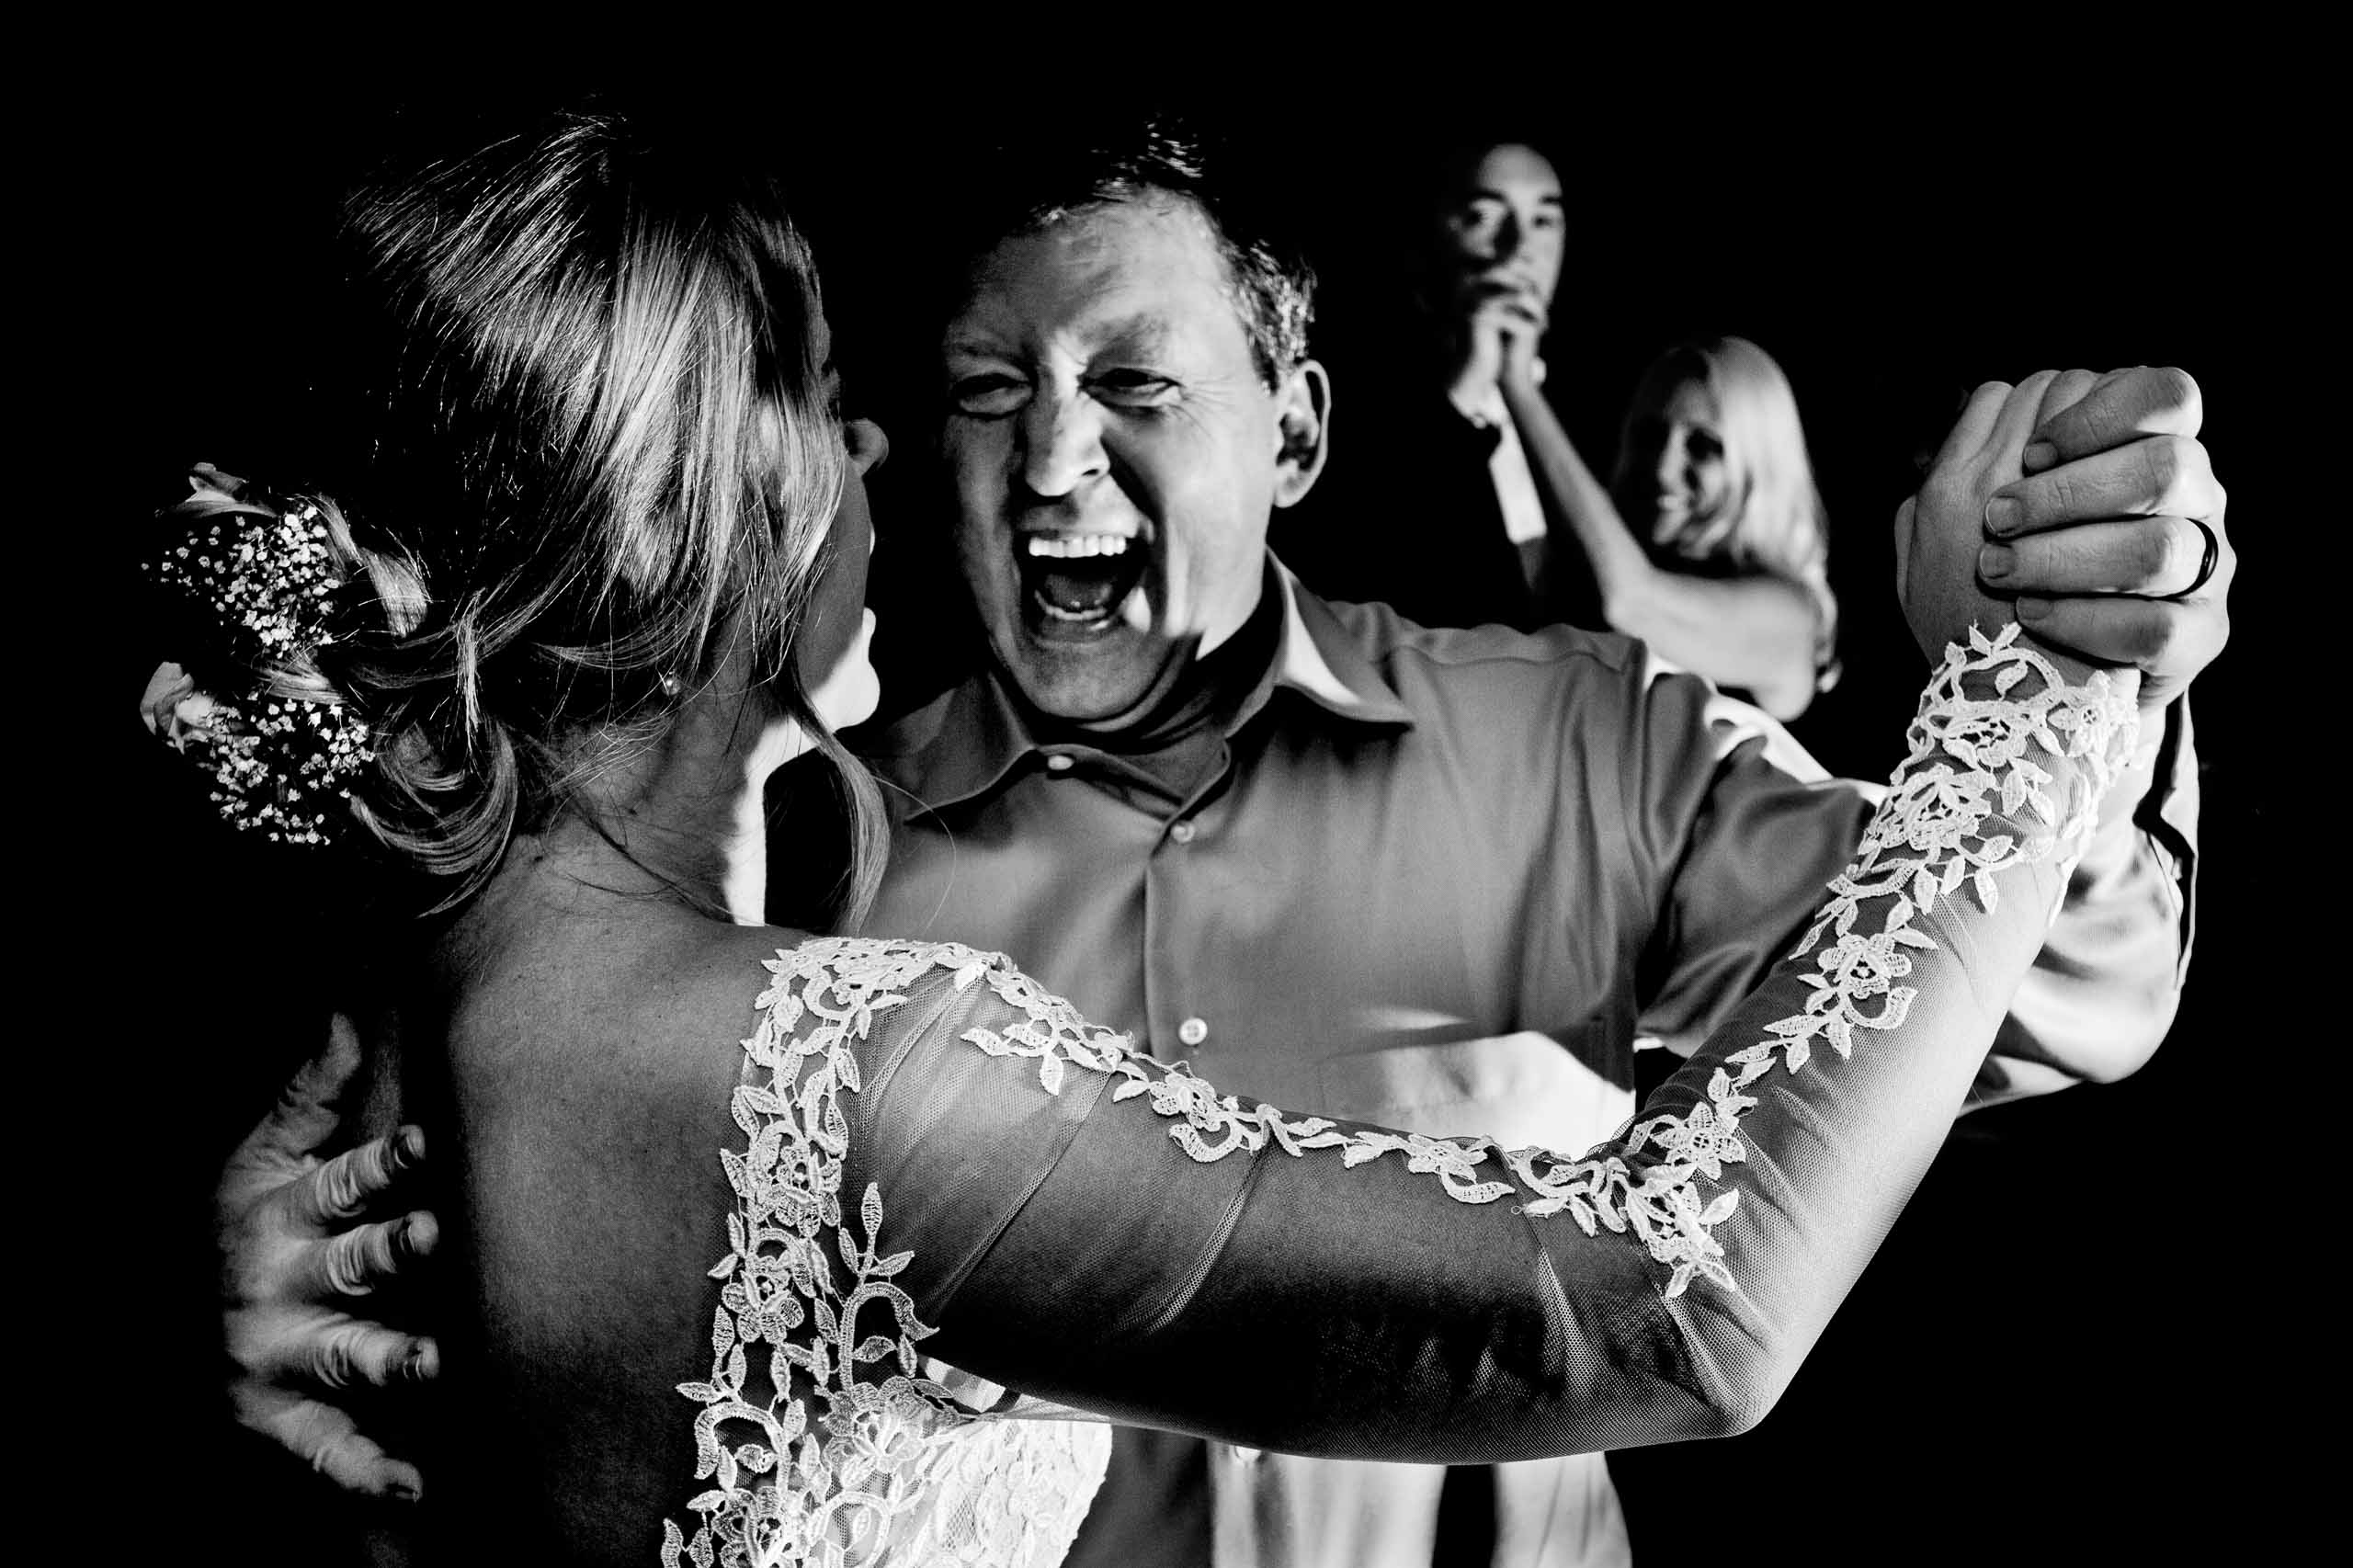 Fun photo of dancing at a Columbia Gorge Hotel wedding reception